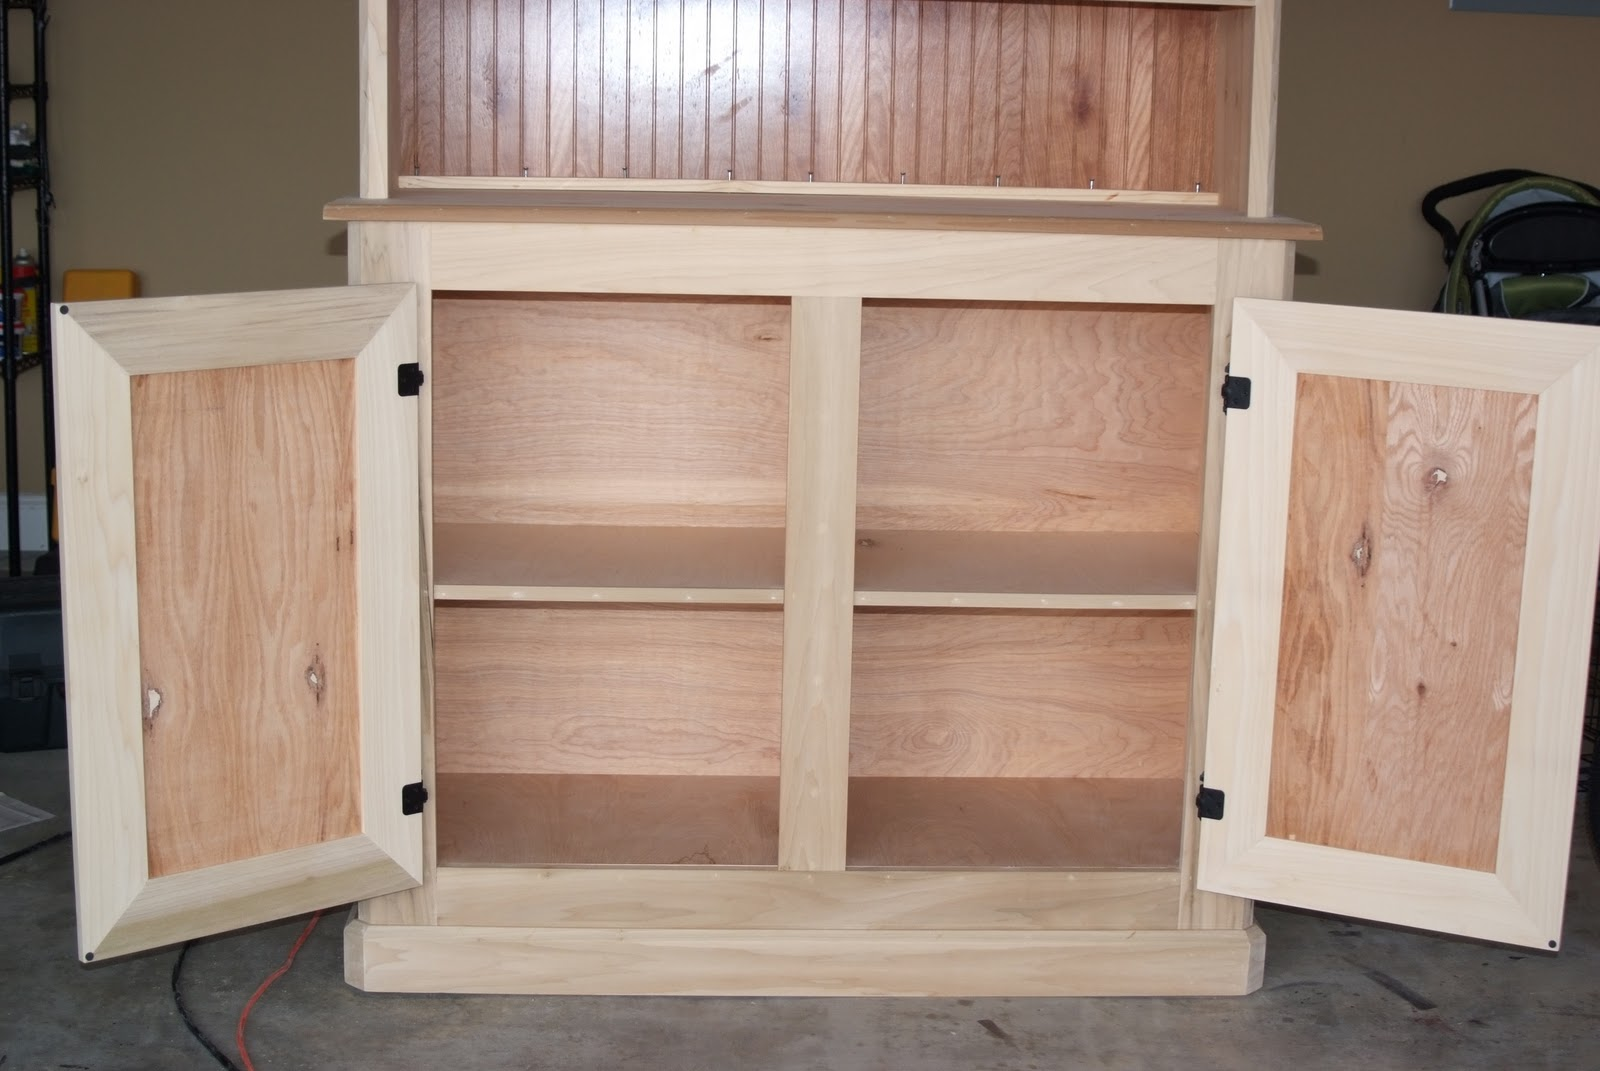 Kiwi Wood Werks & Designs: & Designs (Craft Storage